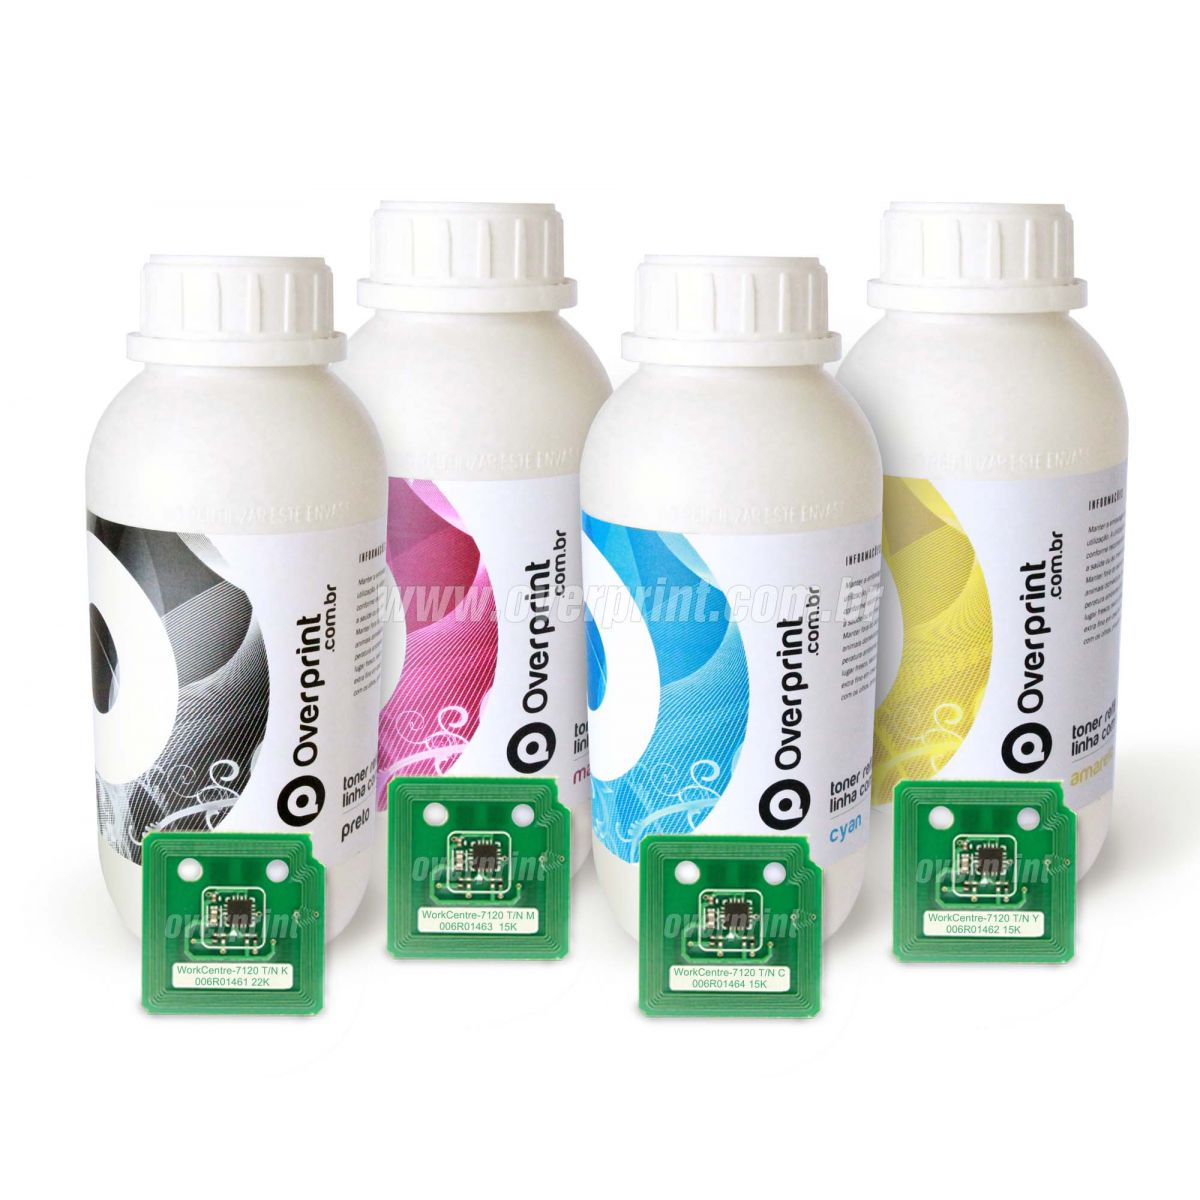 Kit Refil de Toner 4 cores + 4 Chips Xerox WorkCentre 7120/7125/7220/7225 - Overprint